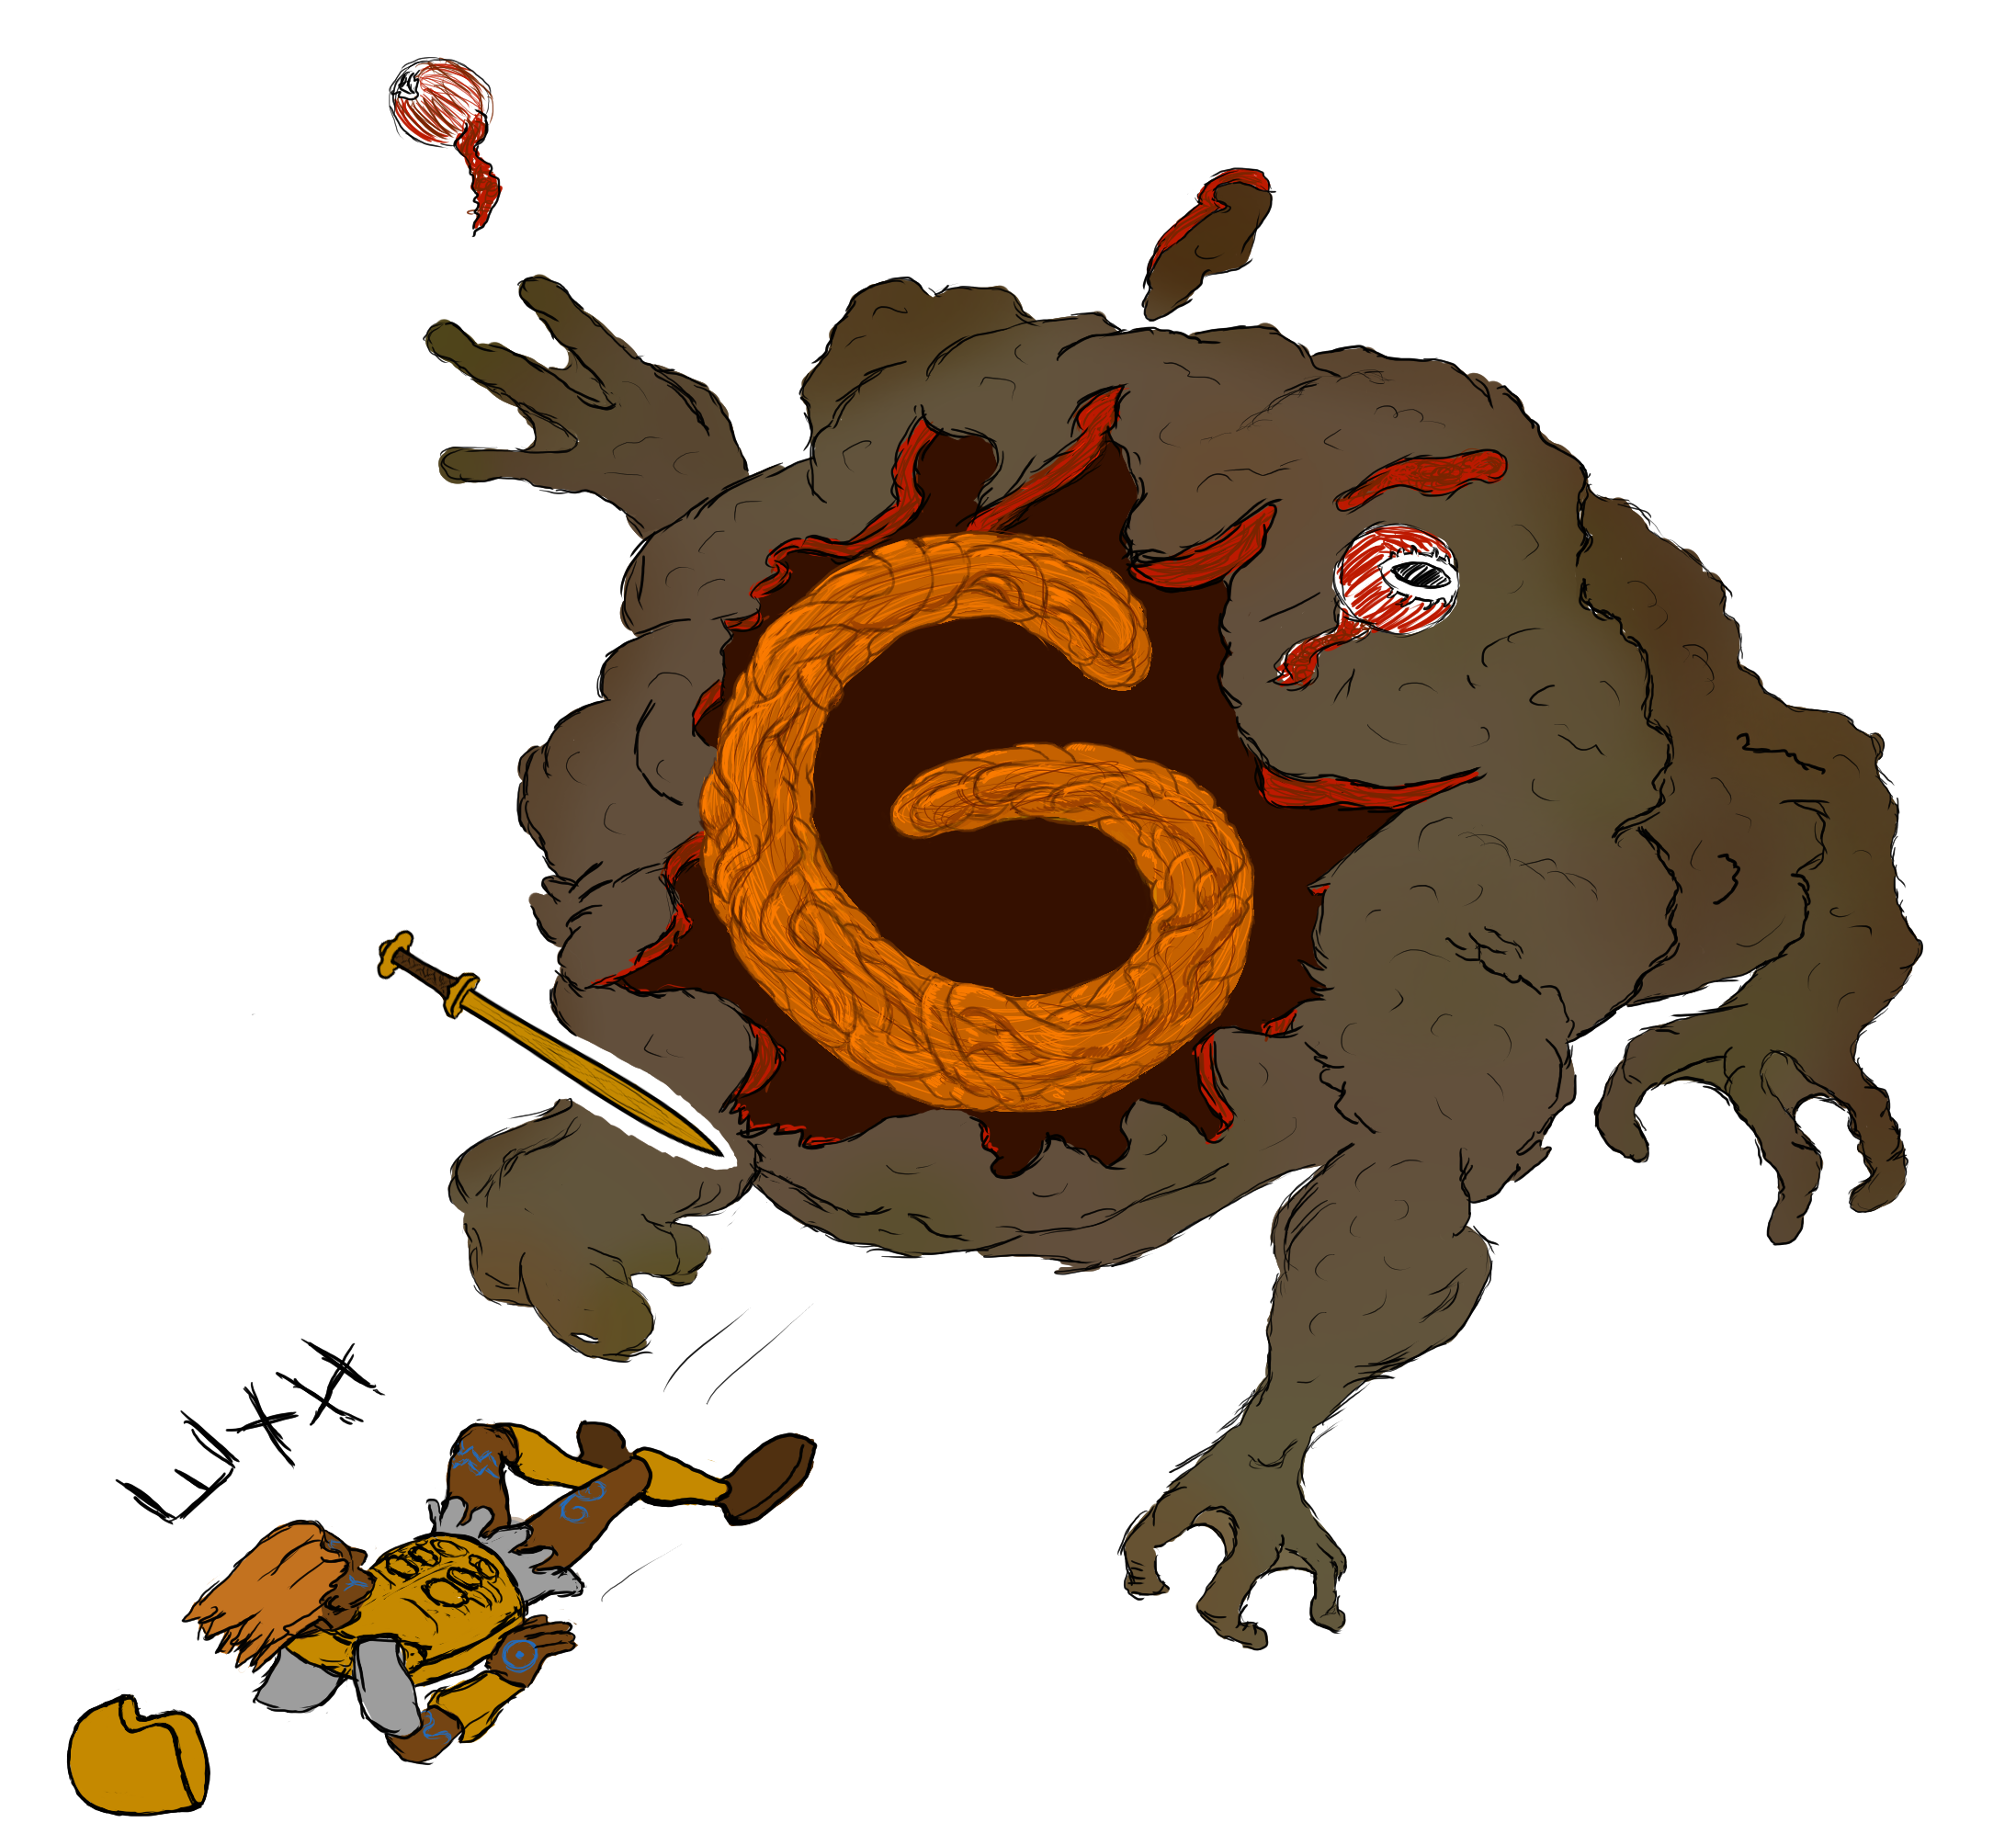 An exploding giant toad with an Air Rune textured to look like orange viscera.  A warrior has been blown over in front of the toad.